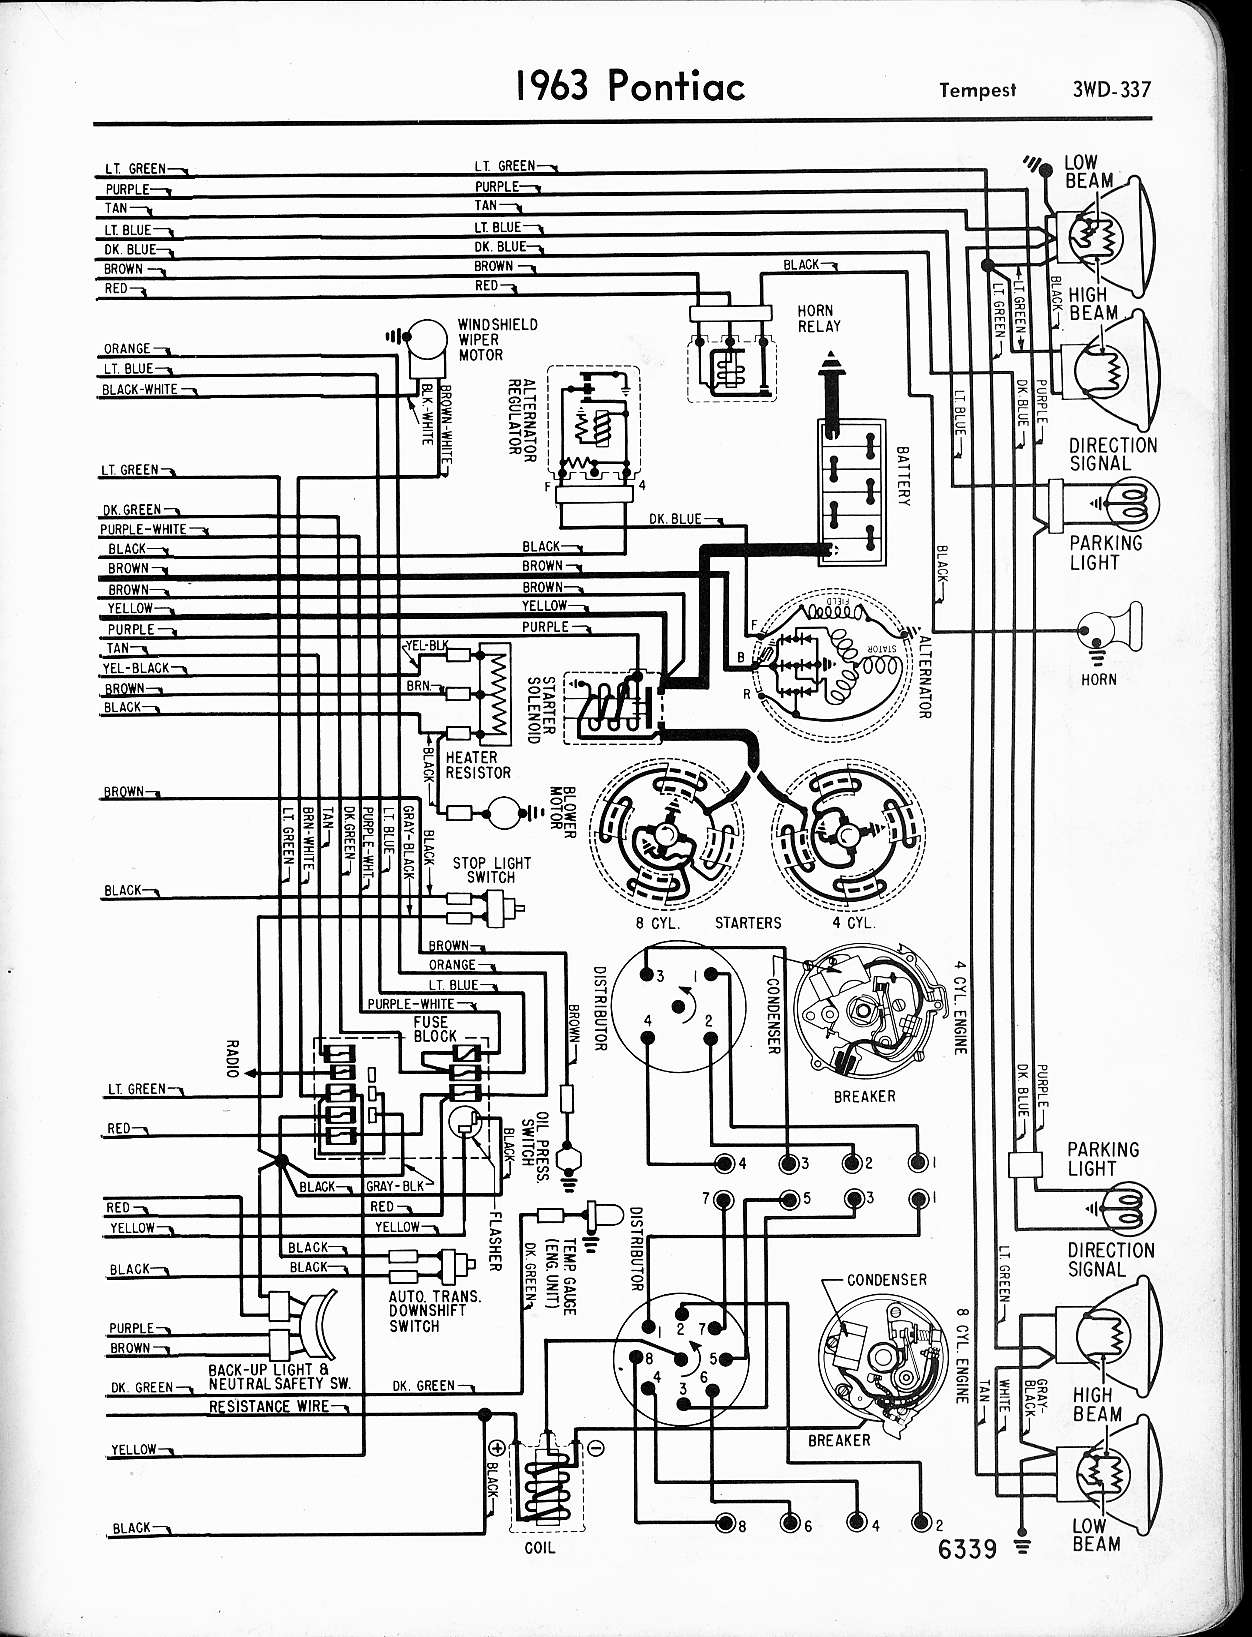 1964 f100 engine wire diagram best wiring library 1963 Ford Econoline Pickup Up wallace racing wiring diagrams ford f100 ignition switch wiring diagram 1963 tempest wiring right page